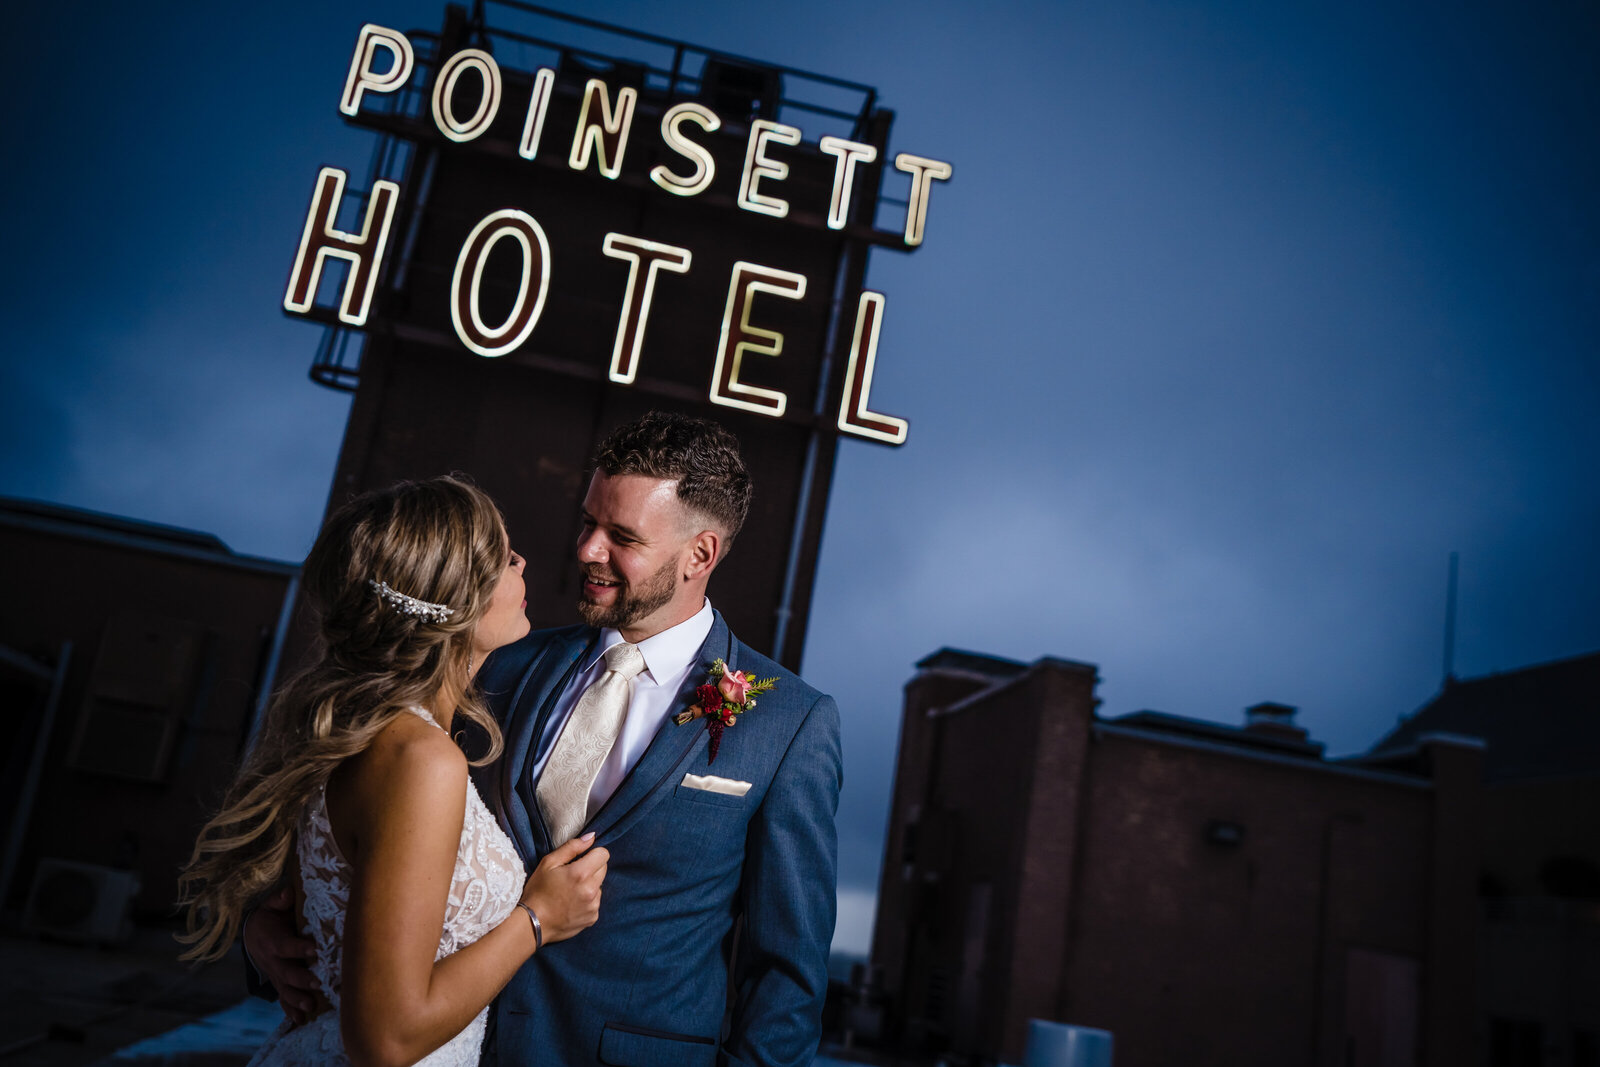 Westin_Poinsett_Greenville_SC_Wedding_Photographer